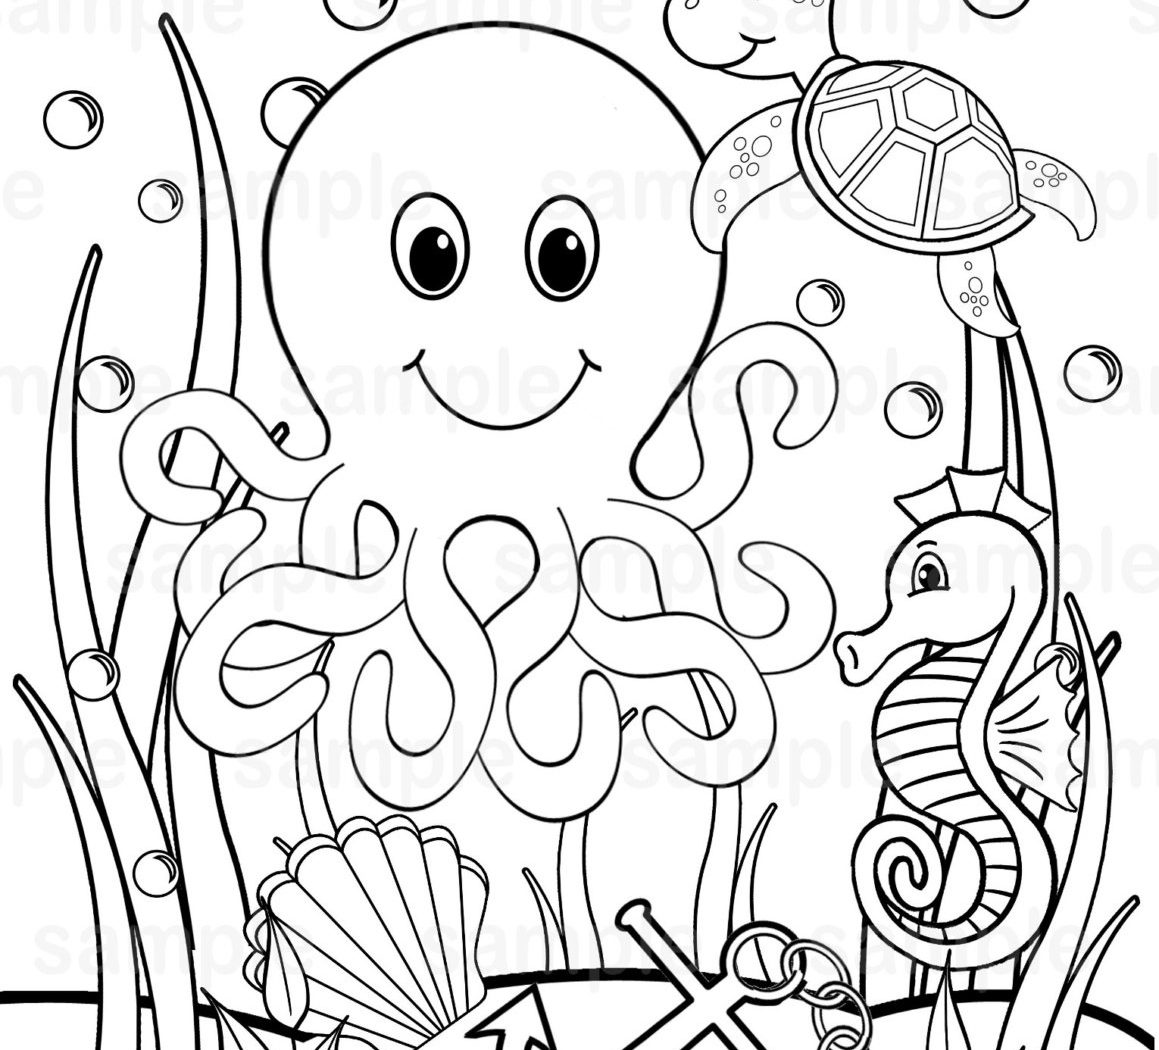 Ocean Coloring Pages For Kids Printable At Getcolorings